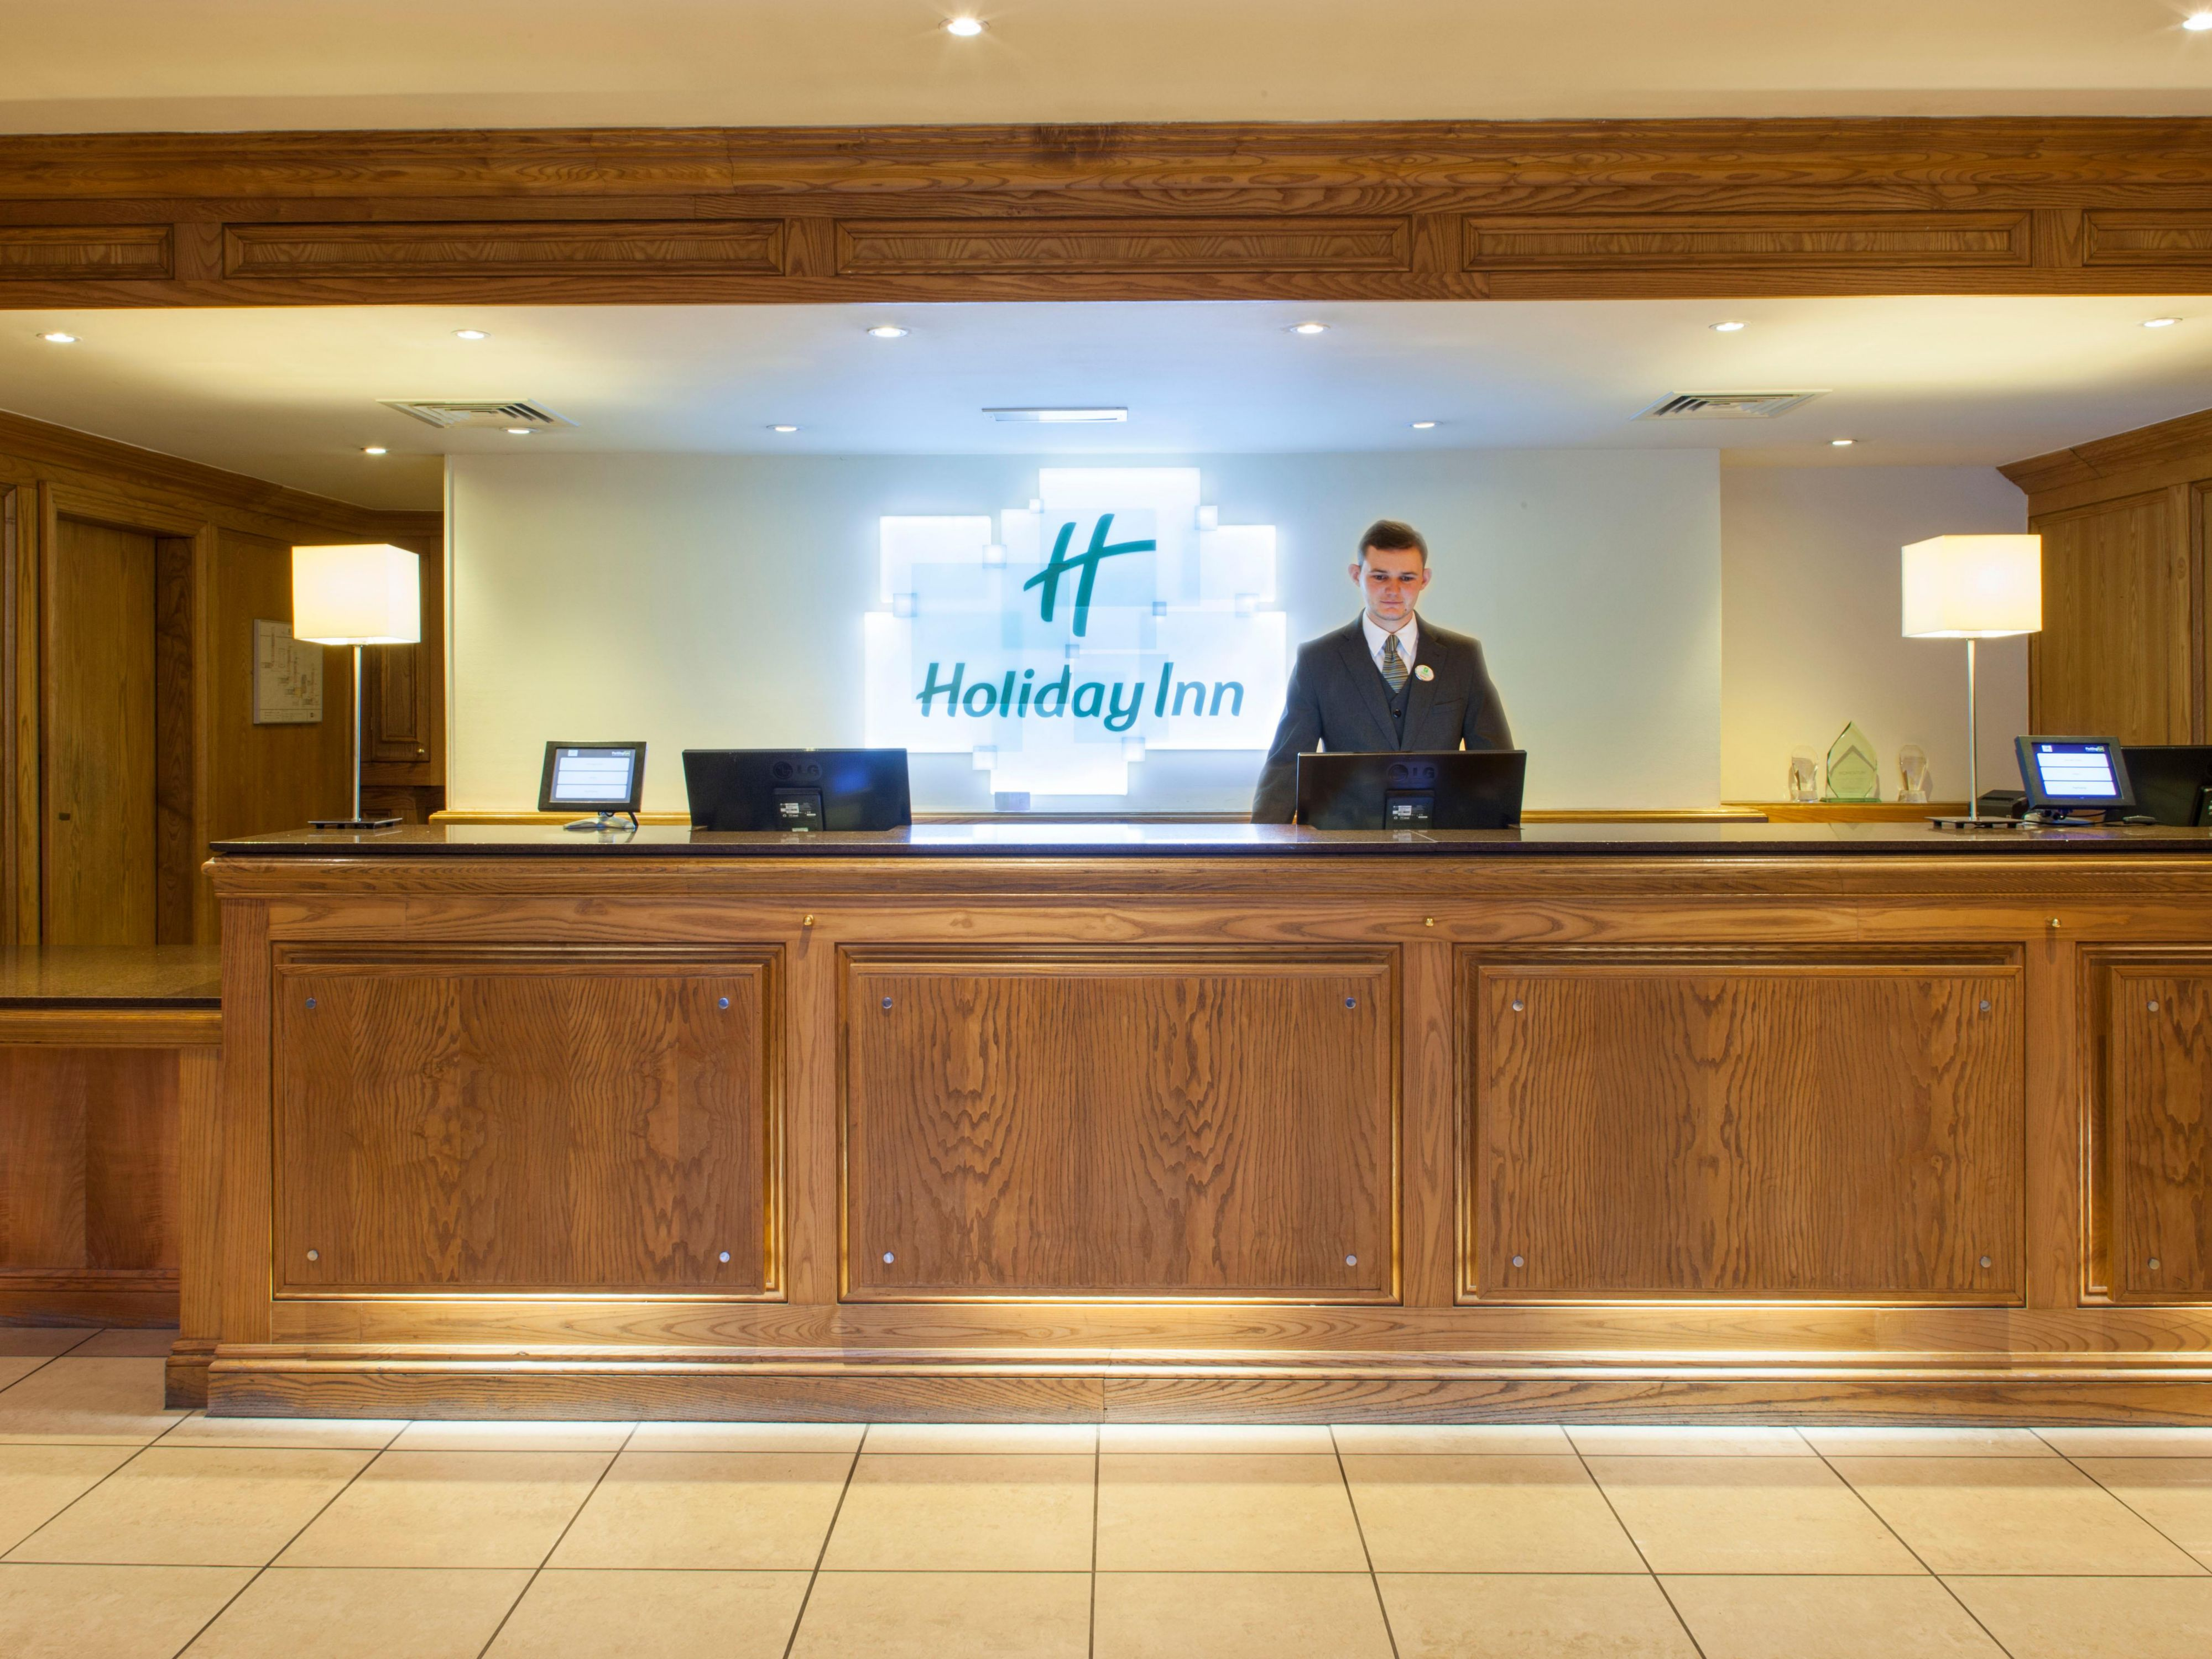 Our team are looking forward to greeting you